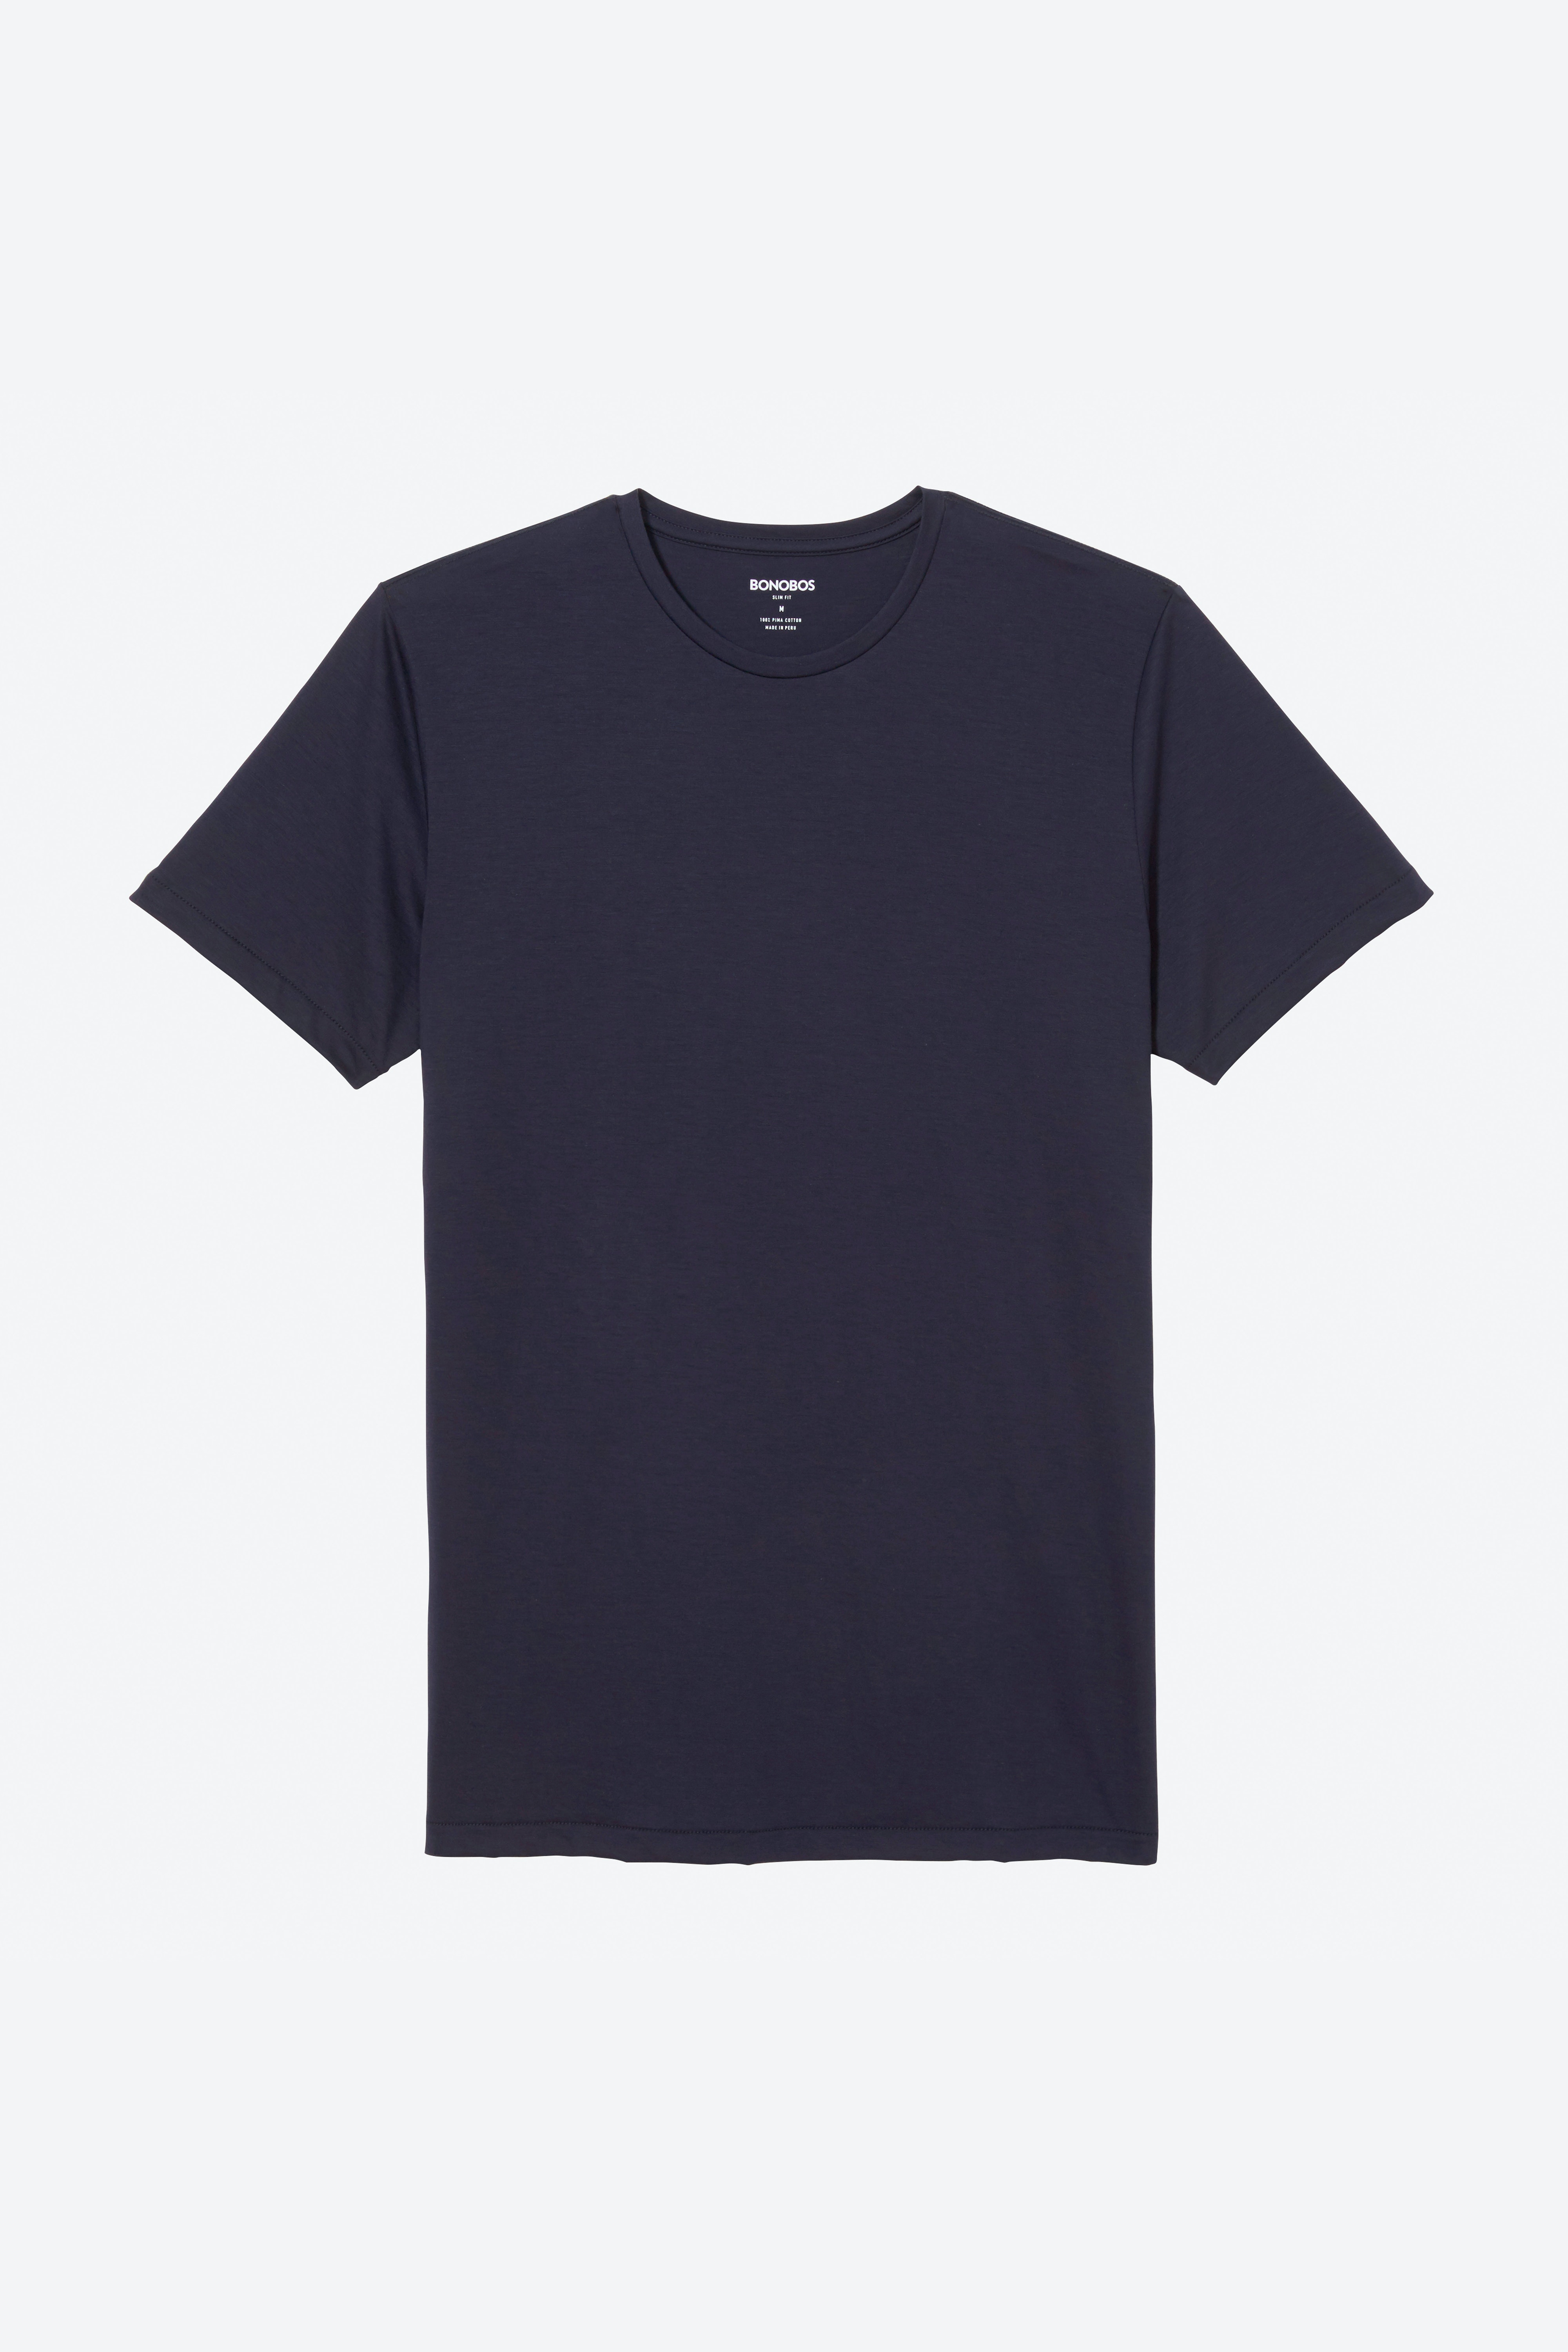 Superfine Crew Neck Tee